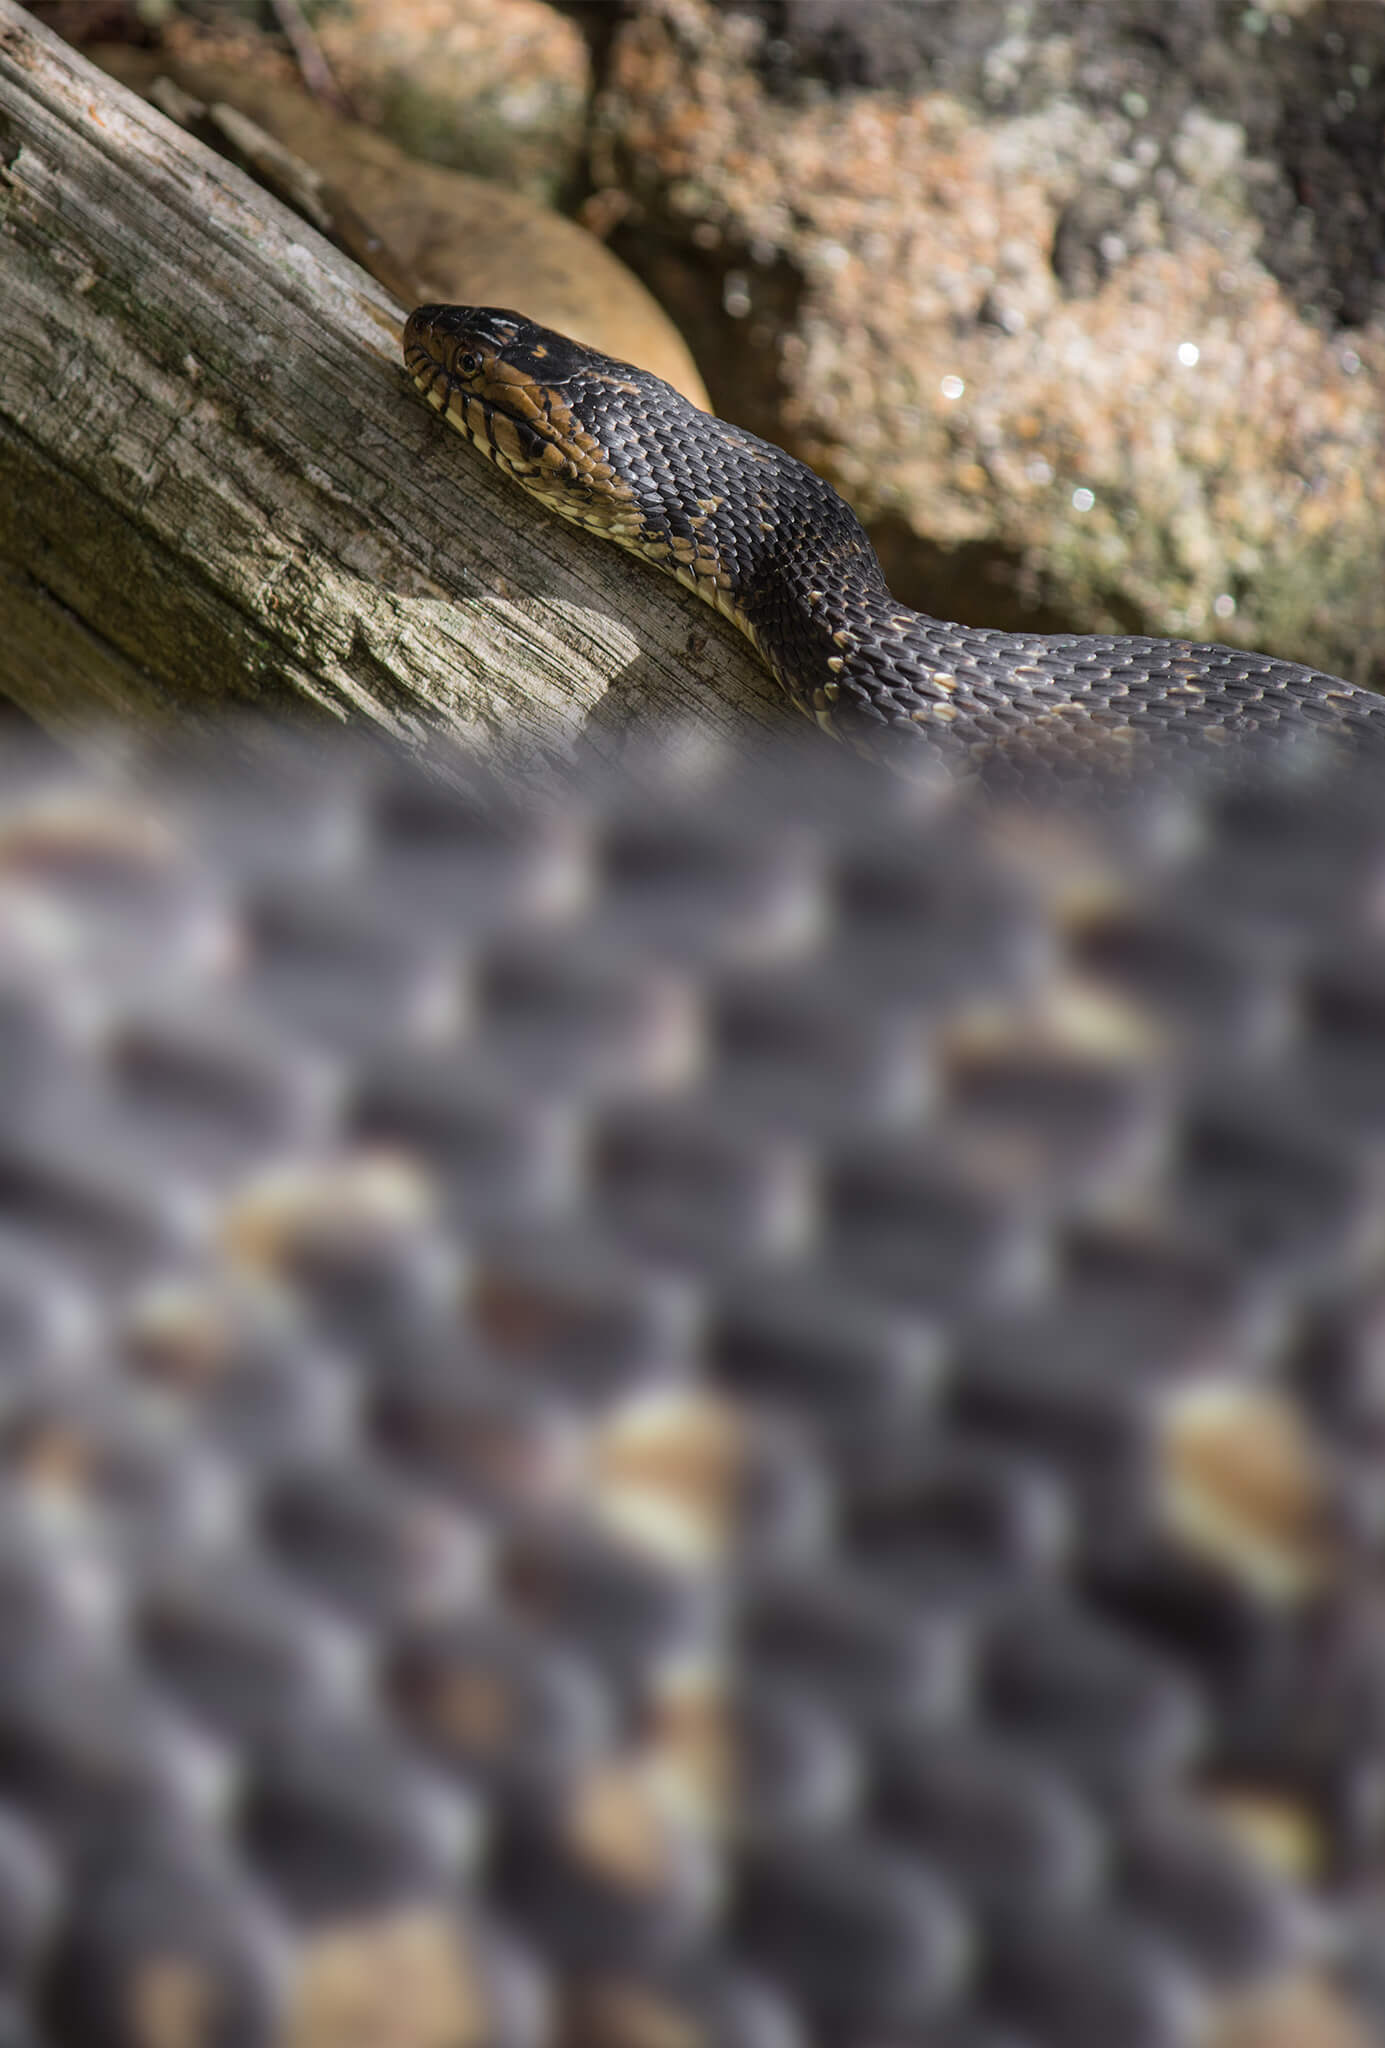 Southern Water Snake